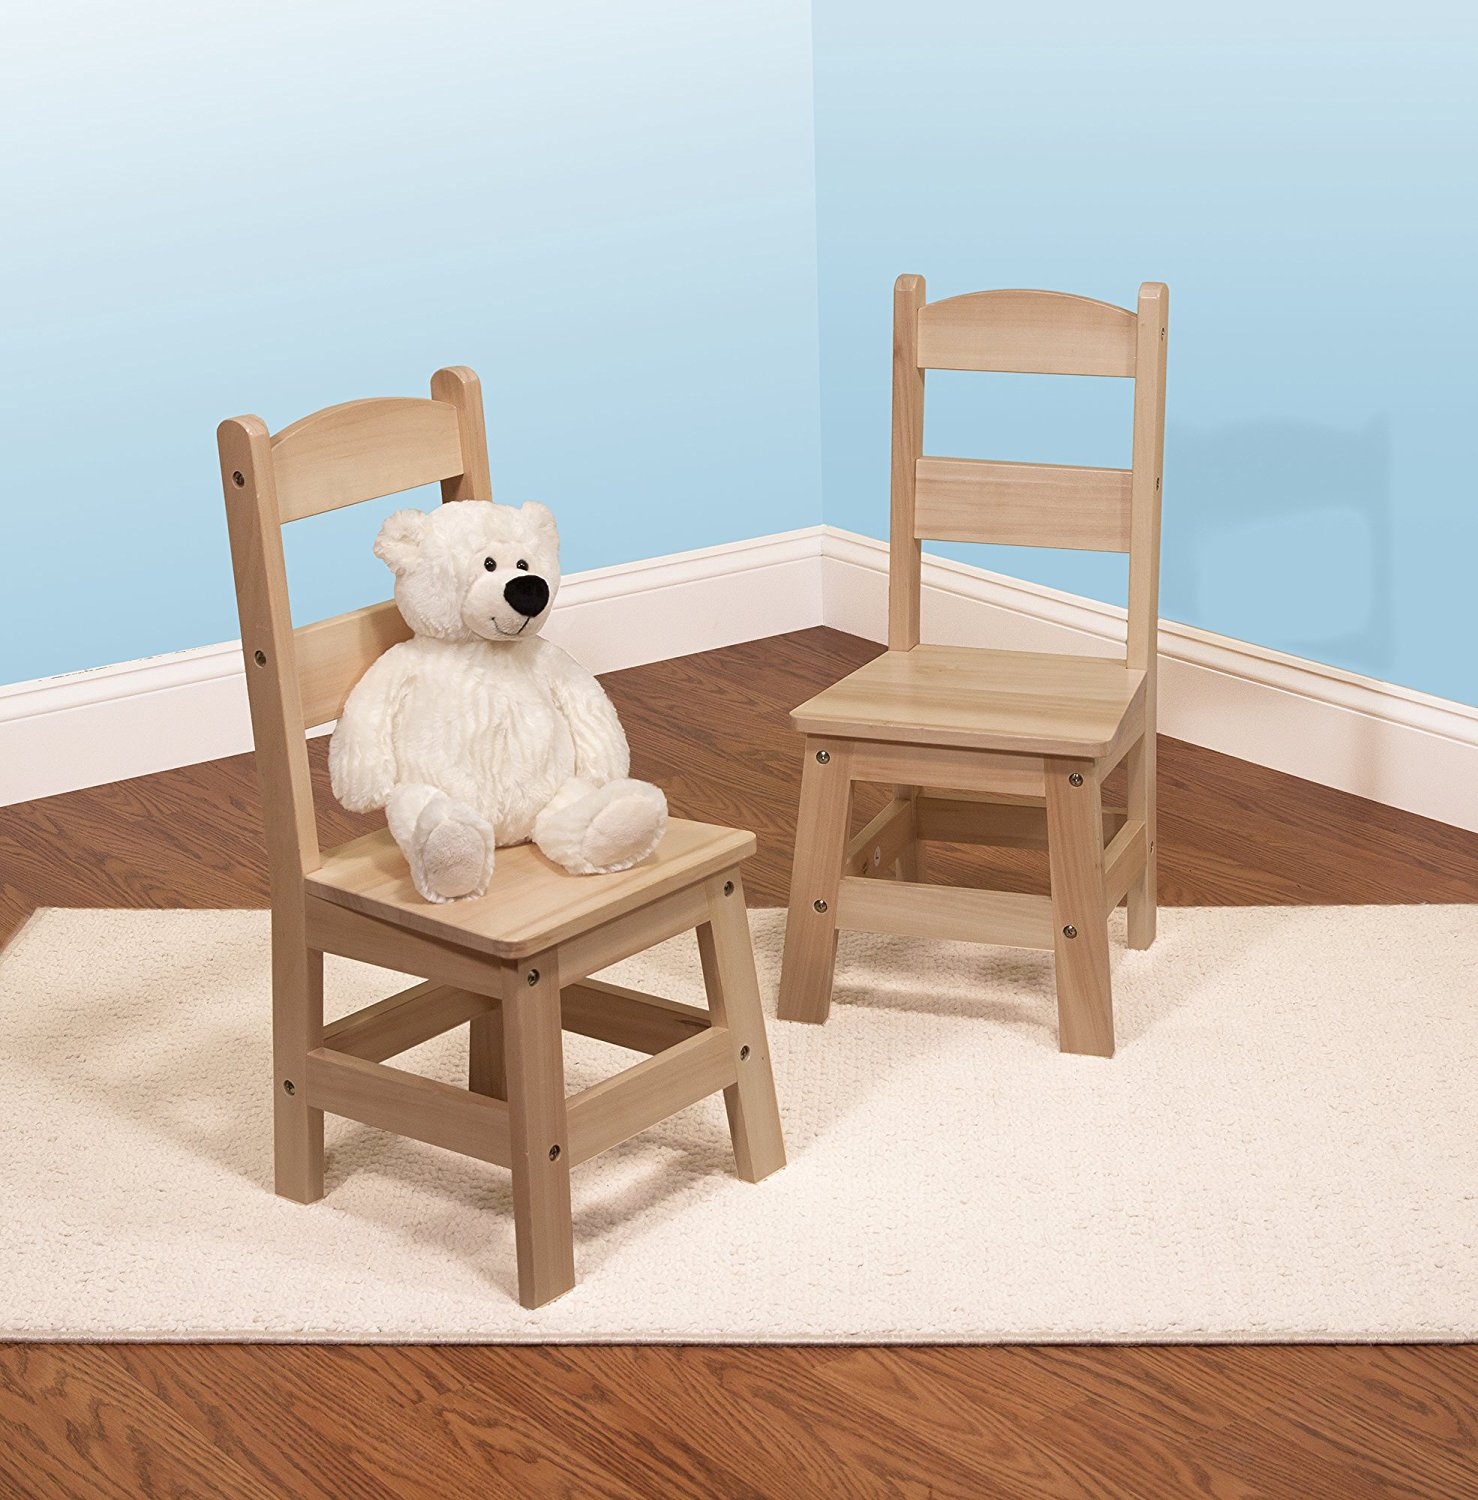 Melissa And Doug Table And Chairs Melissa And Doug Solid Wood Chairs Set Of 2 Light Finish